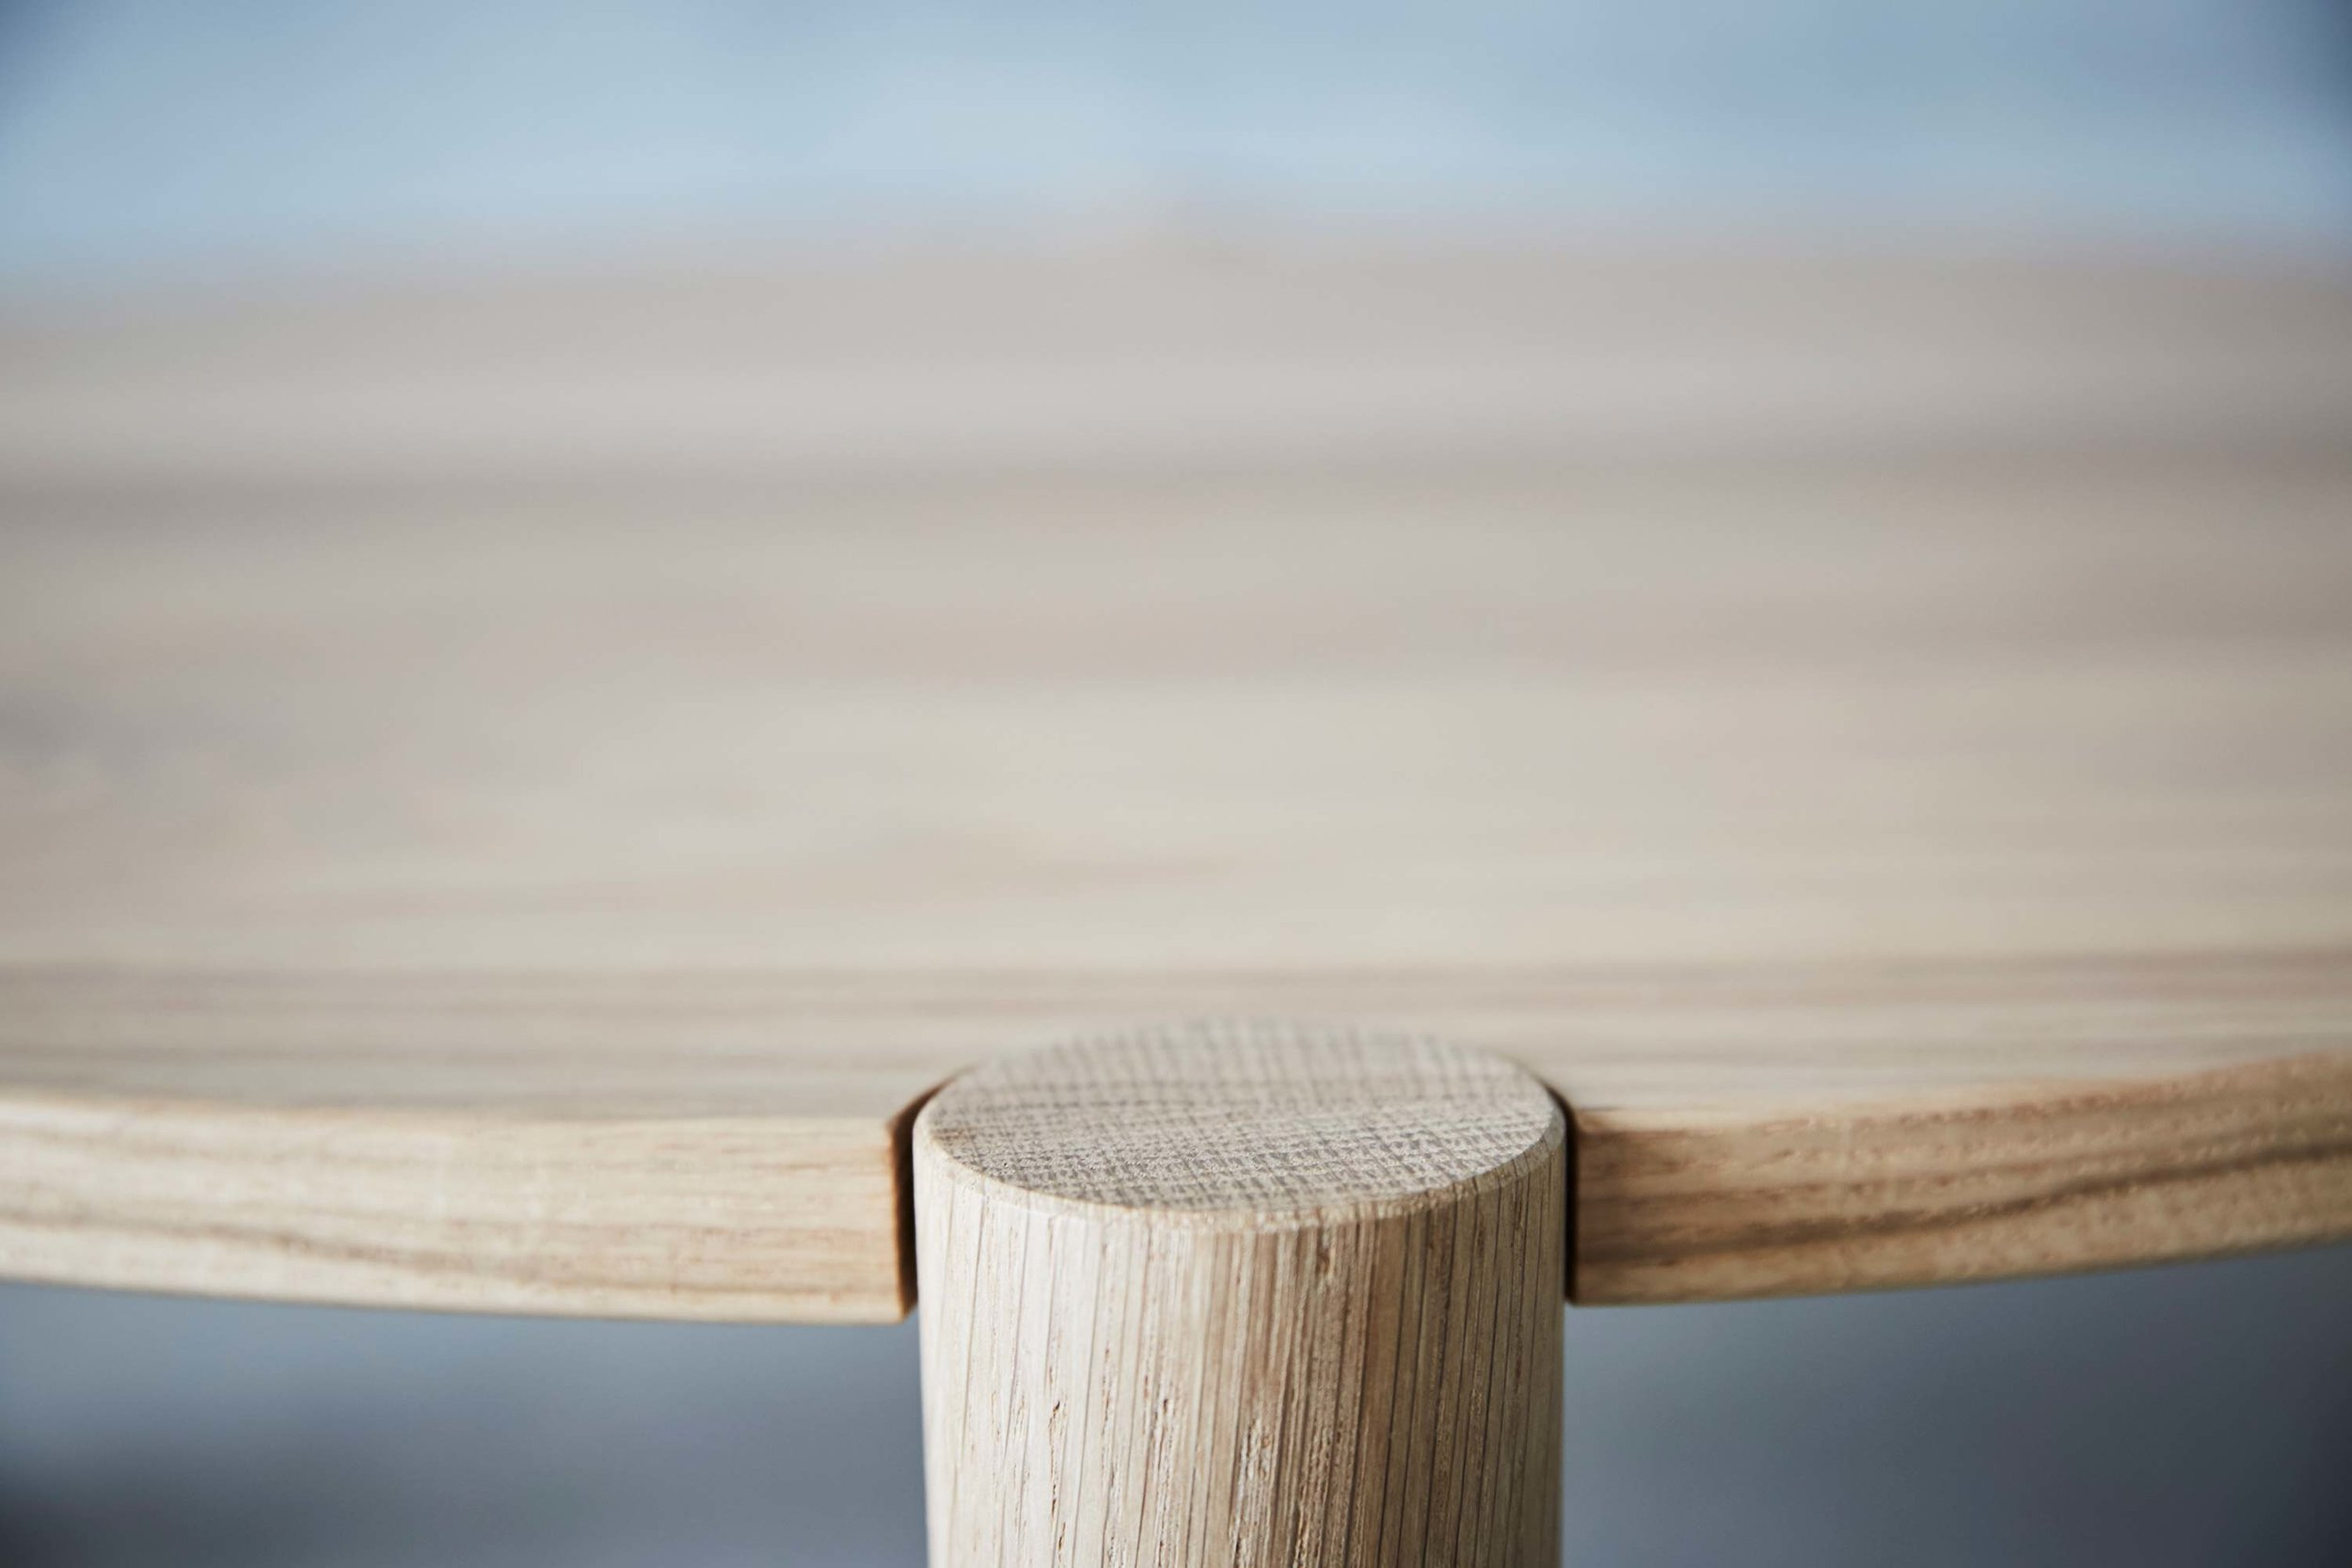 Title Coffee Table by Mast Furniture. Modern, handmade furniture.